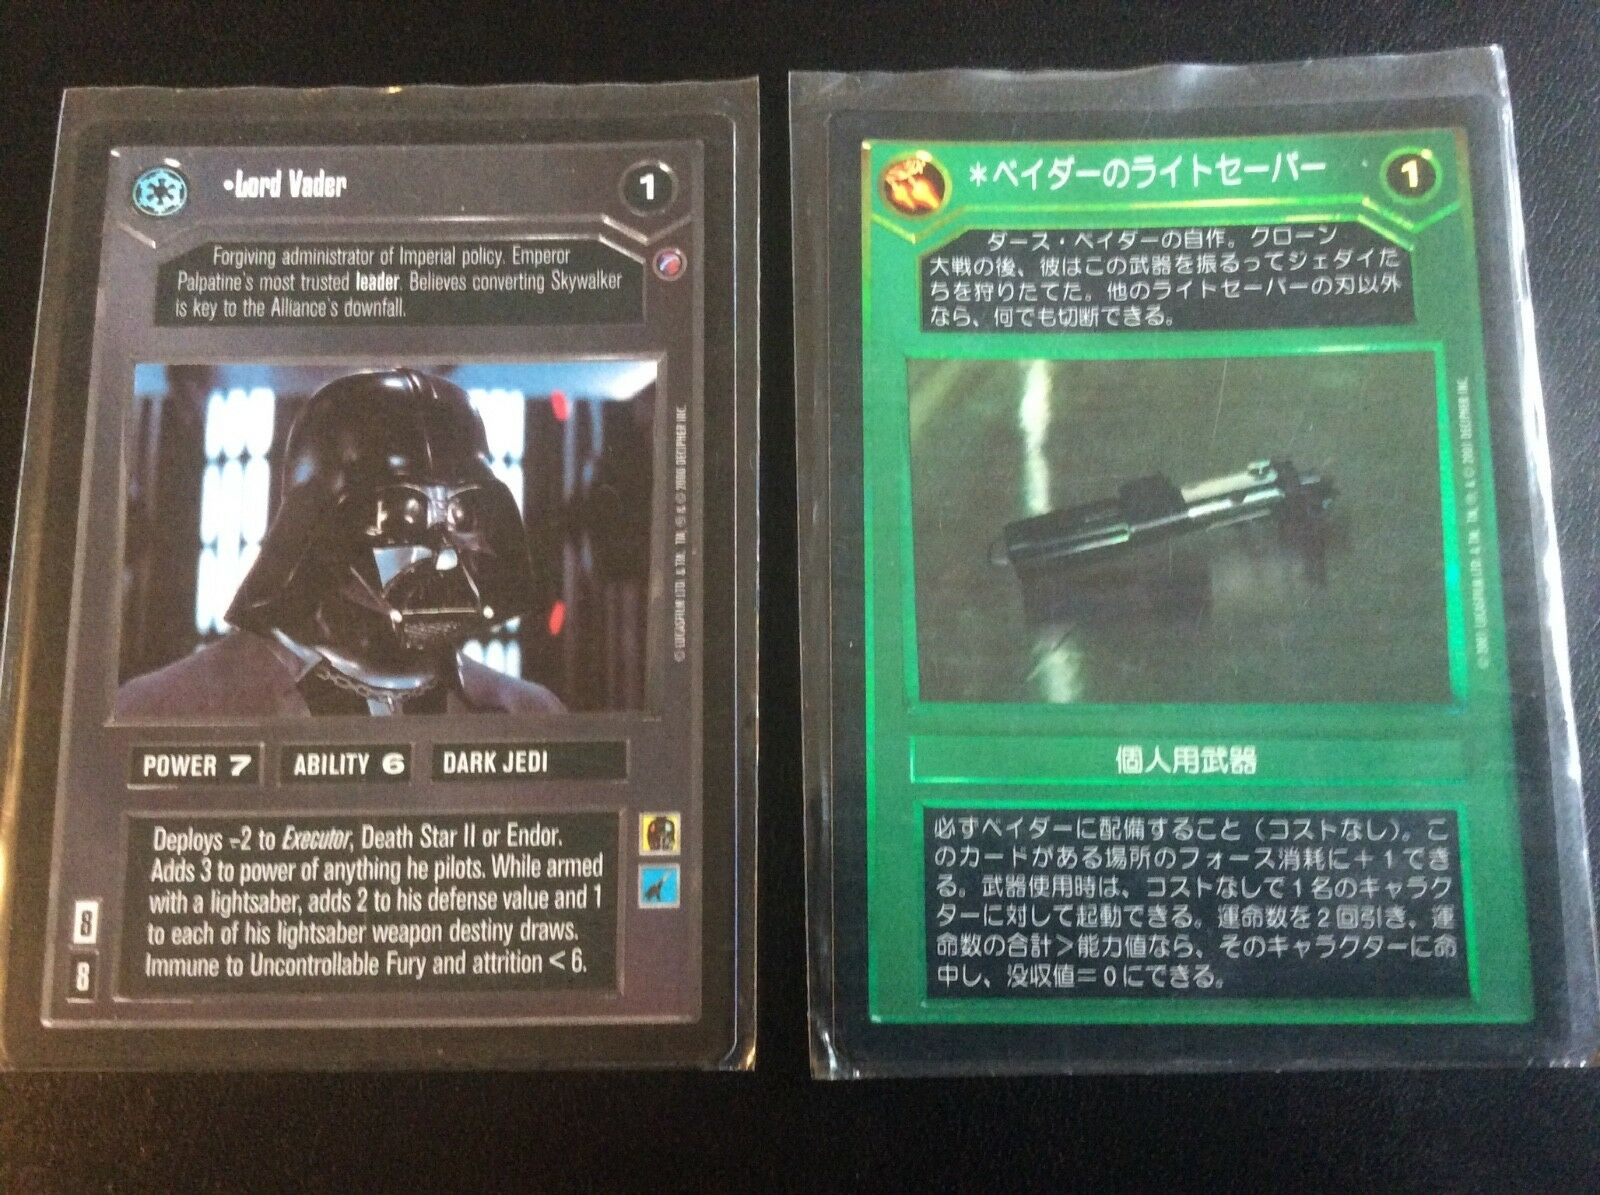 Star Wars Game Card Lord Vader Light Saber FOIL - Death Star II - Dark Side Jedi